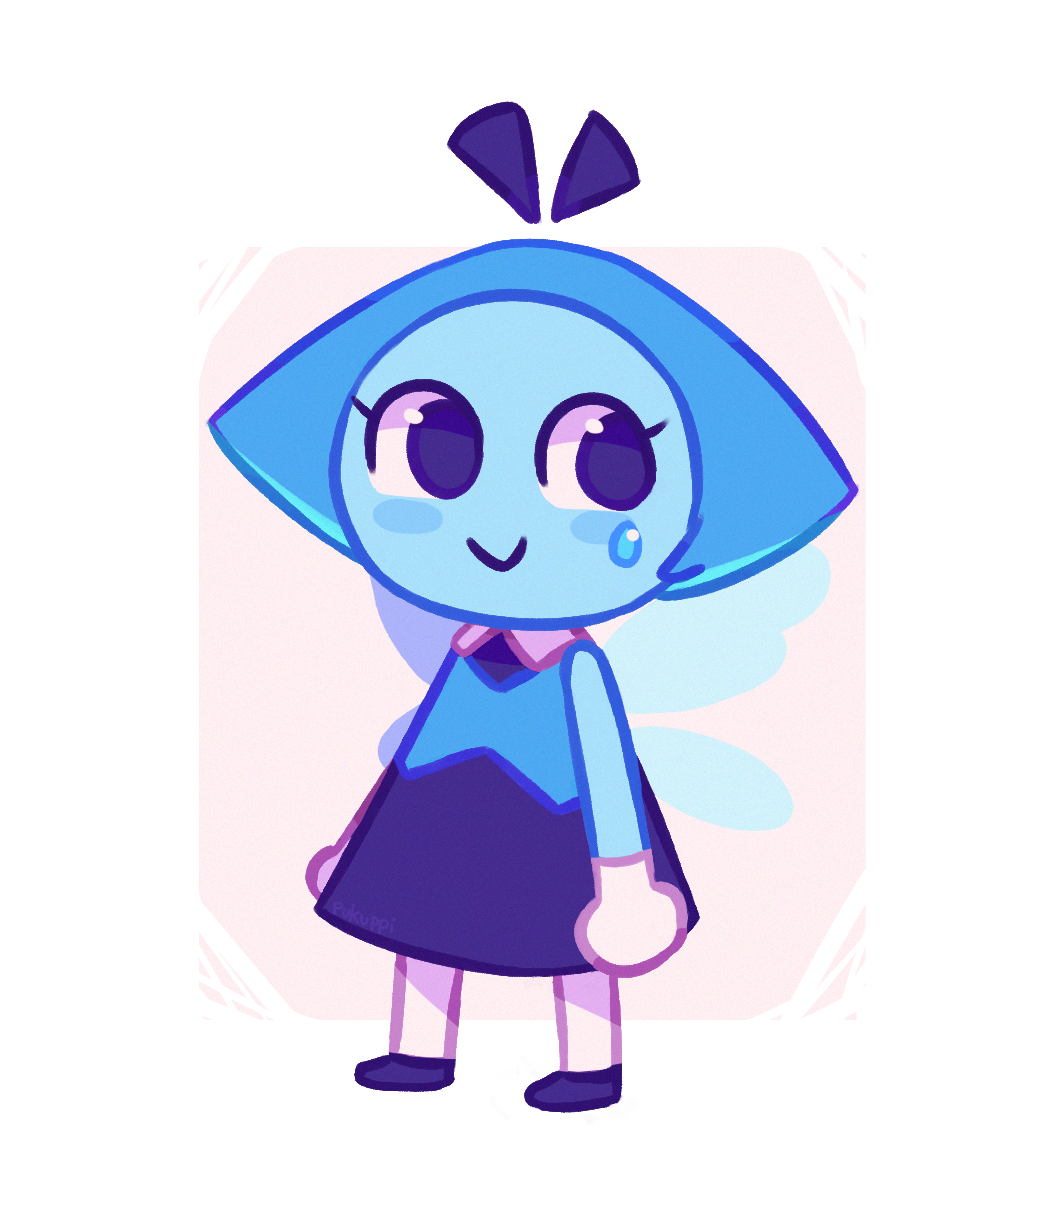 tbh?? aqua looks like an animal crossing villager kinda (its unnerving.)